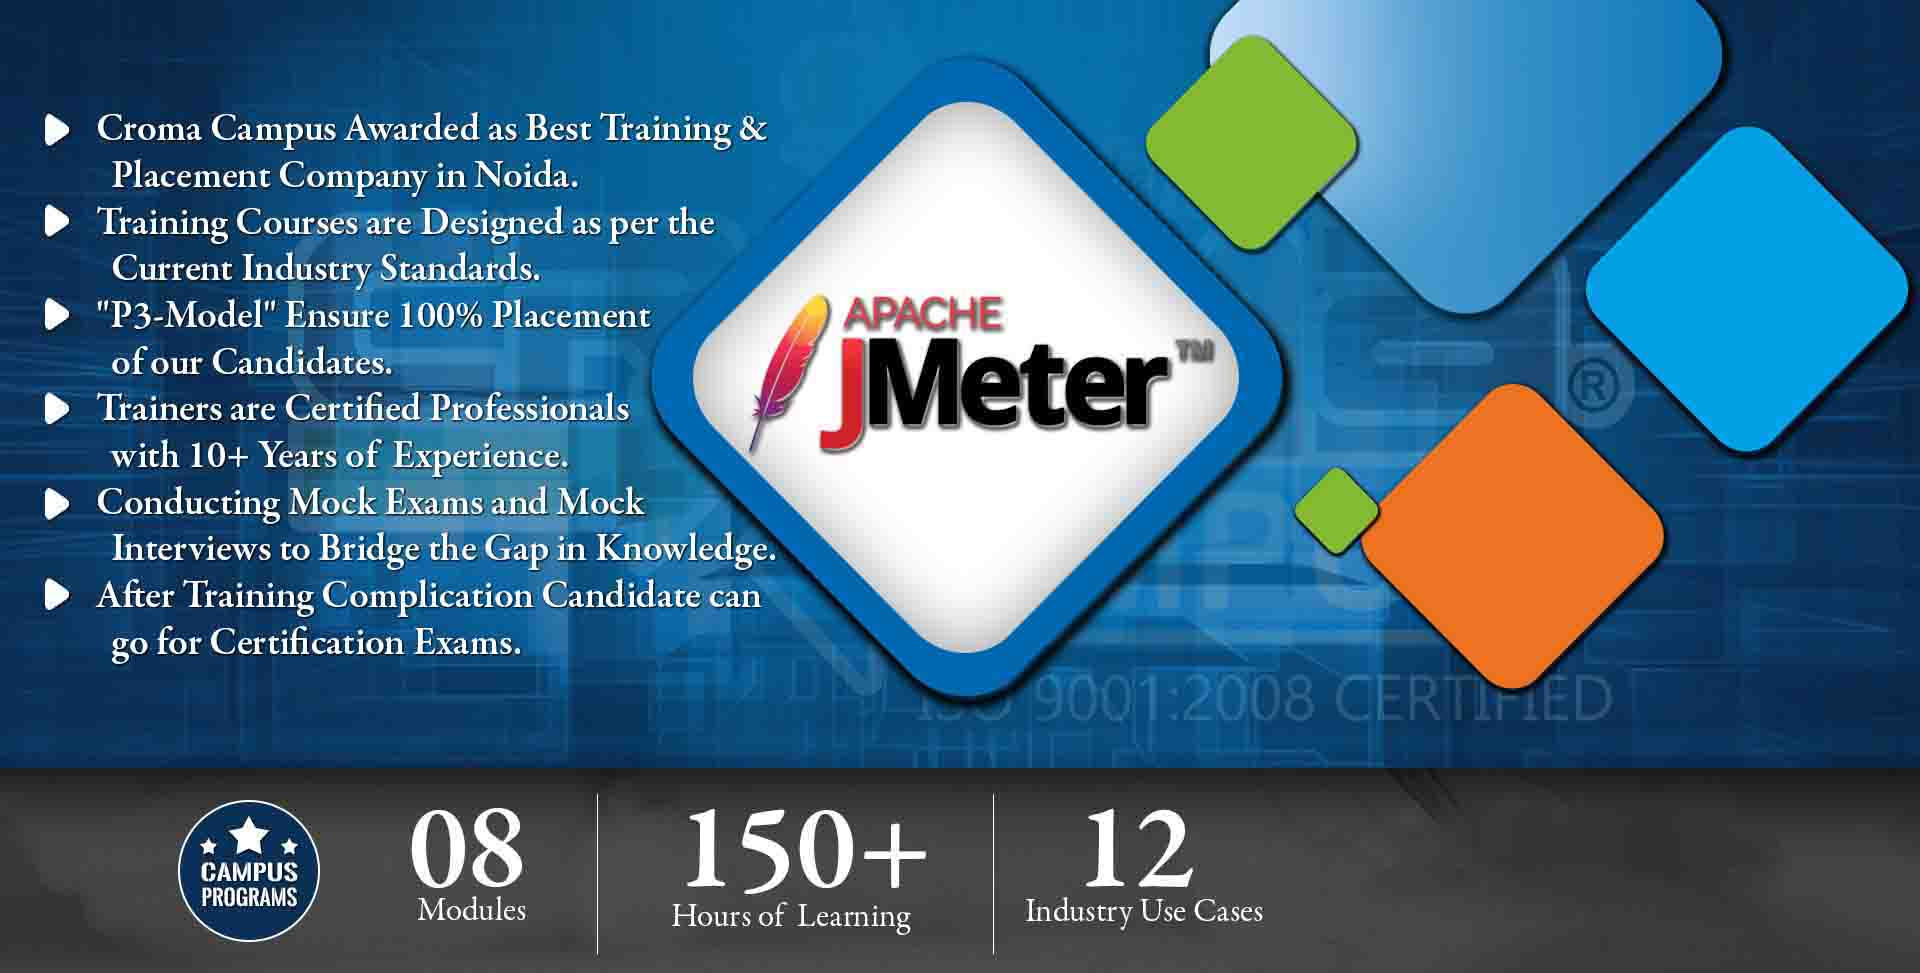 jMeter Training in Noida, jMeter Training Institute in Noida